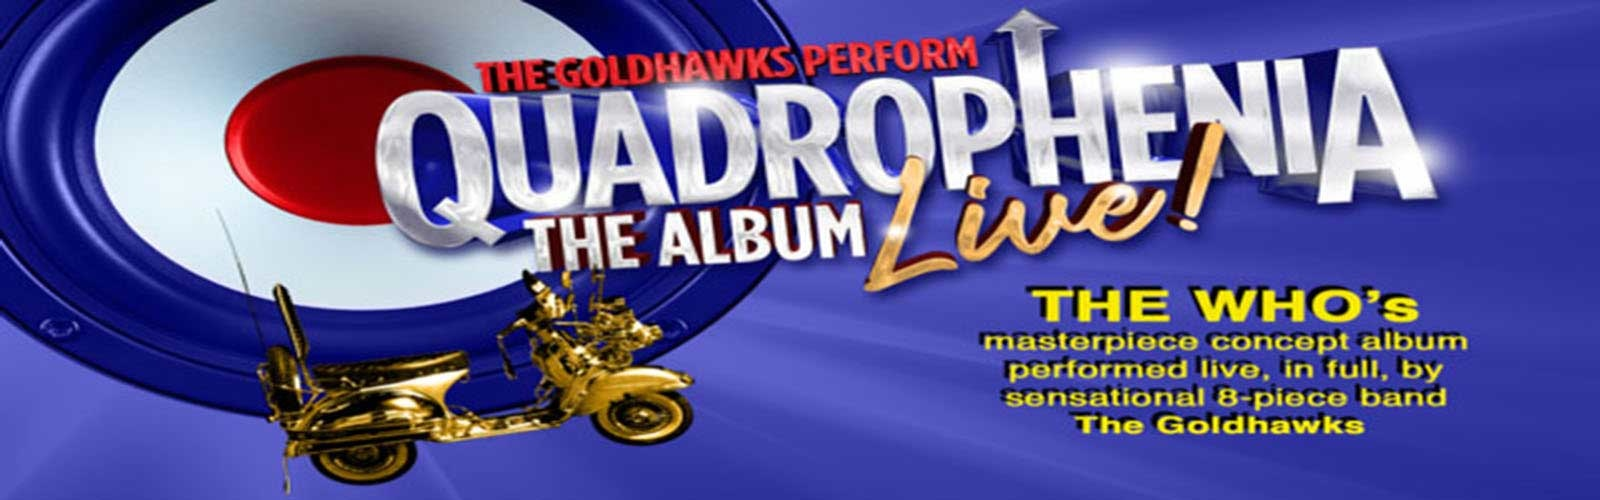 Quadrophenia The Album Live!